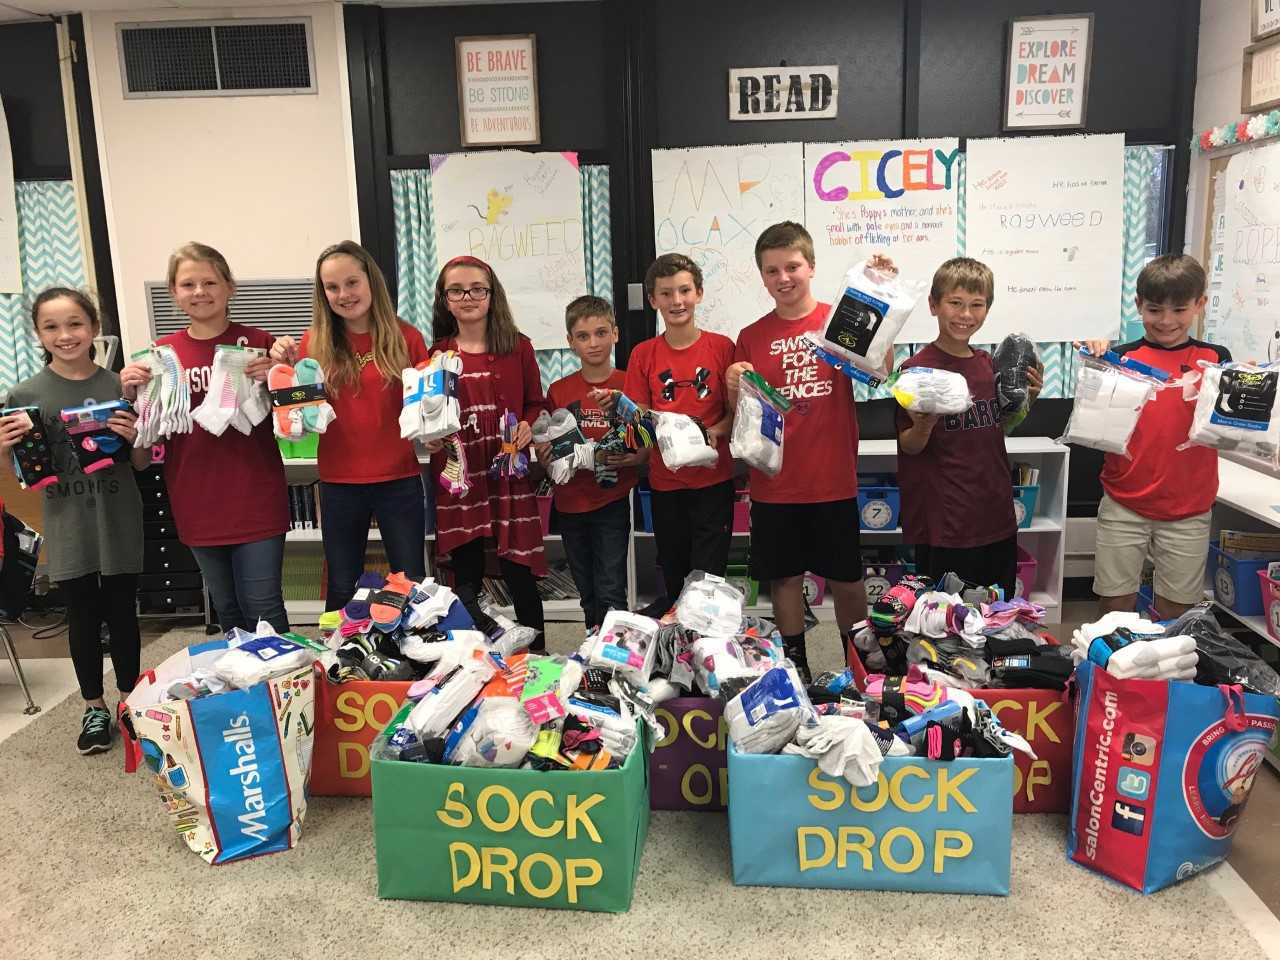 kids with boxes of socks that were collected for a service project